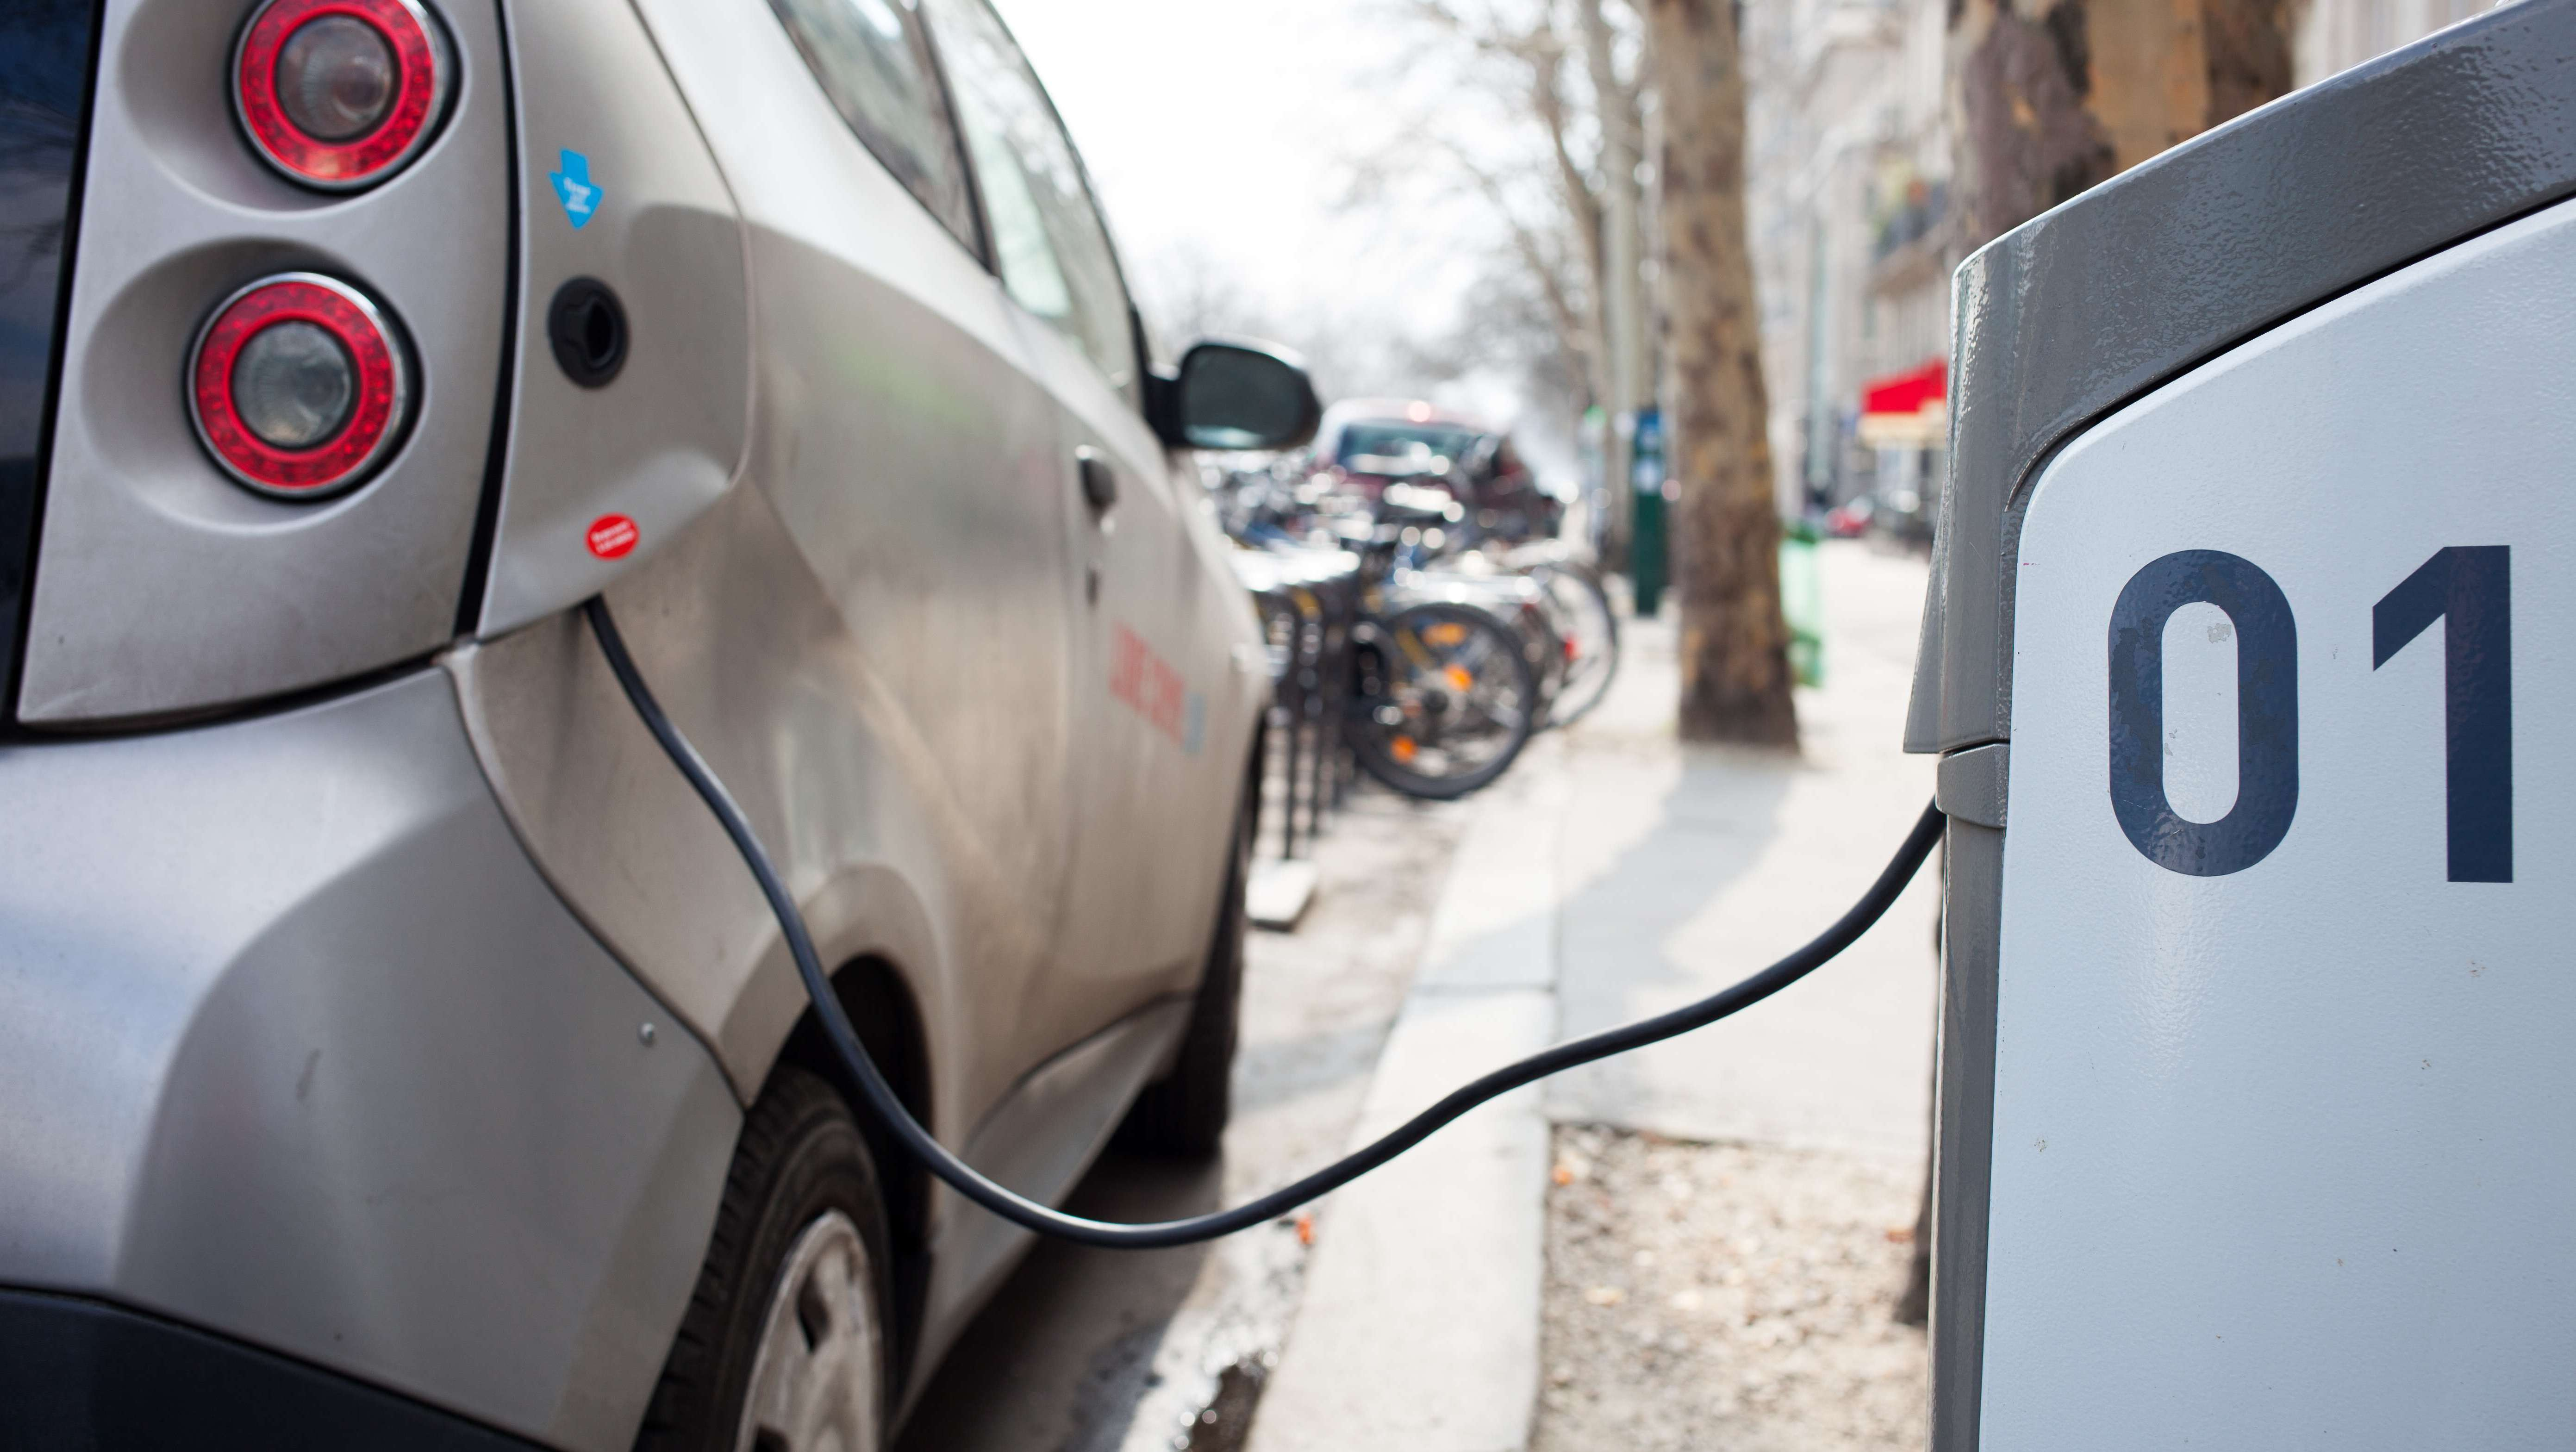 eea report confirms electric cars are better for climate and air